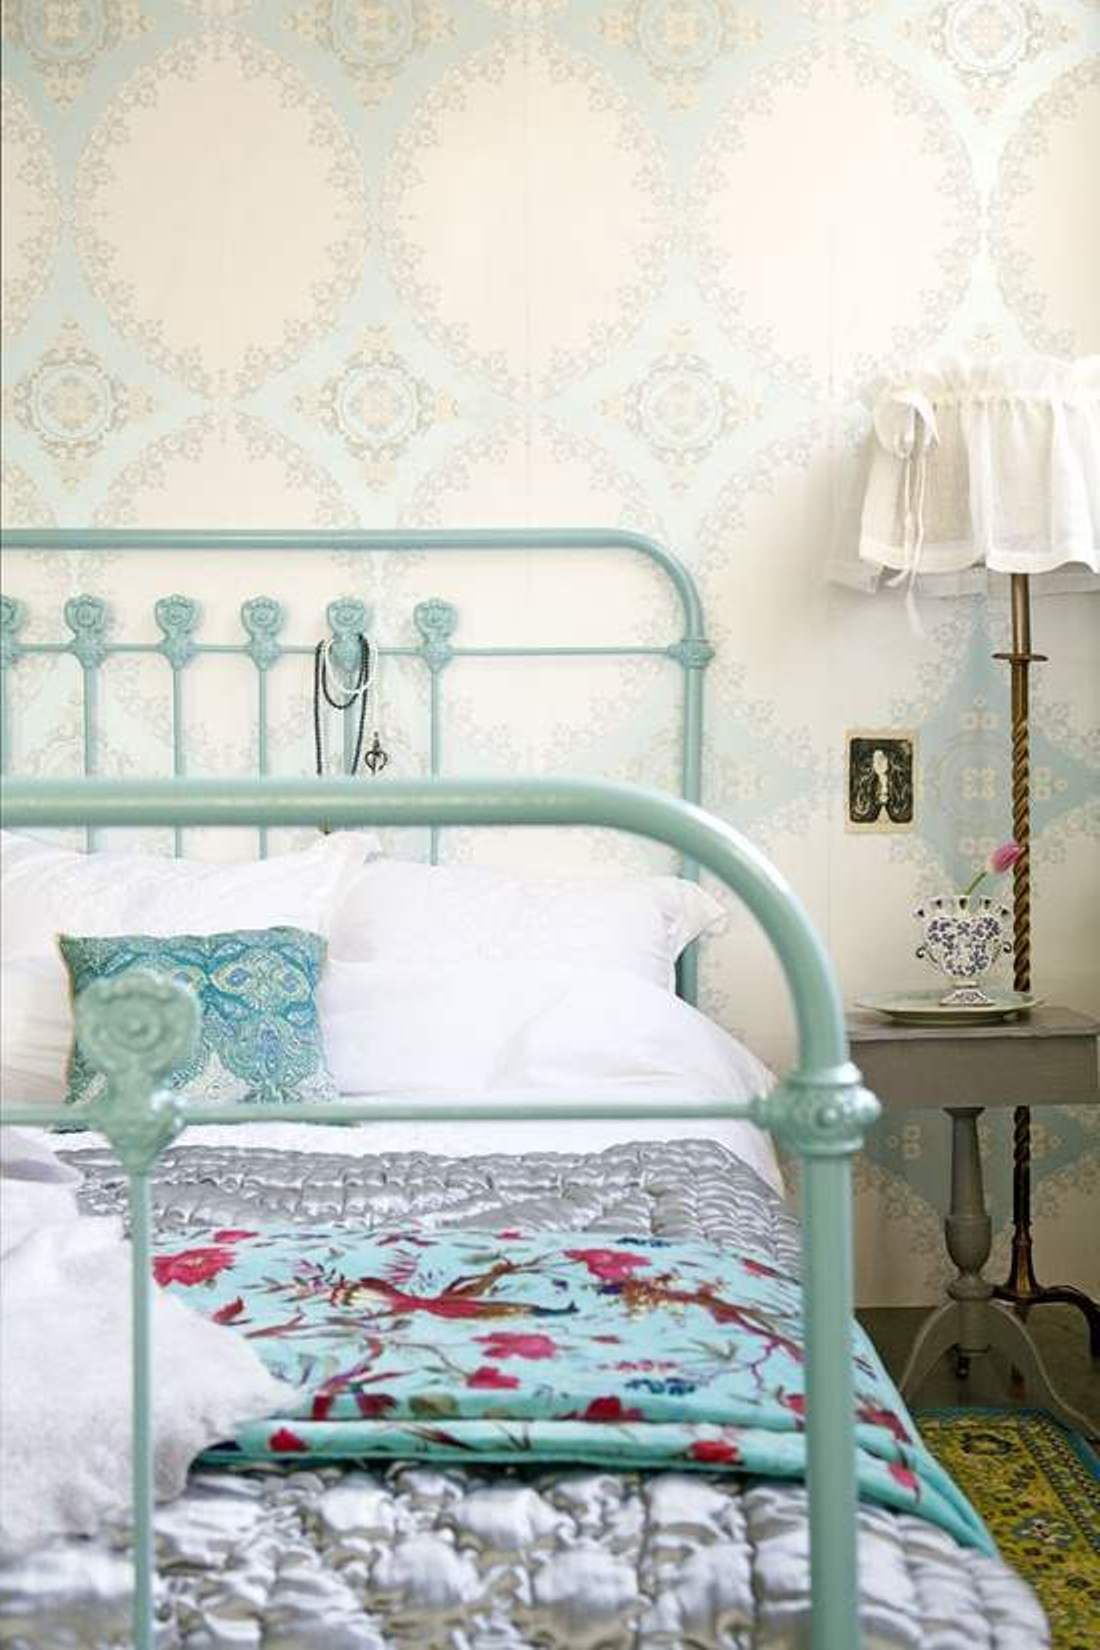 Best Adorable Paris Decor For Bedroom Chic Paris Decor For 400 x 300